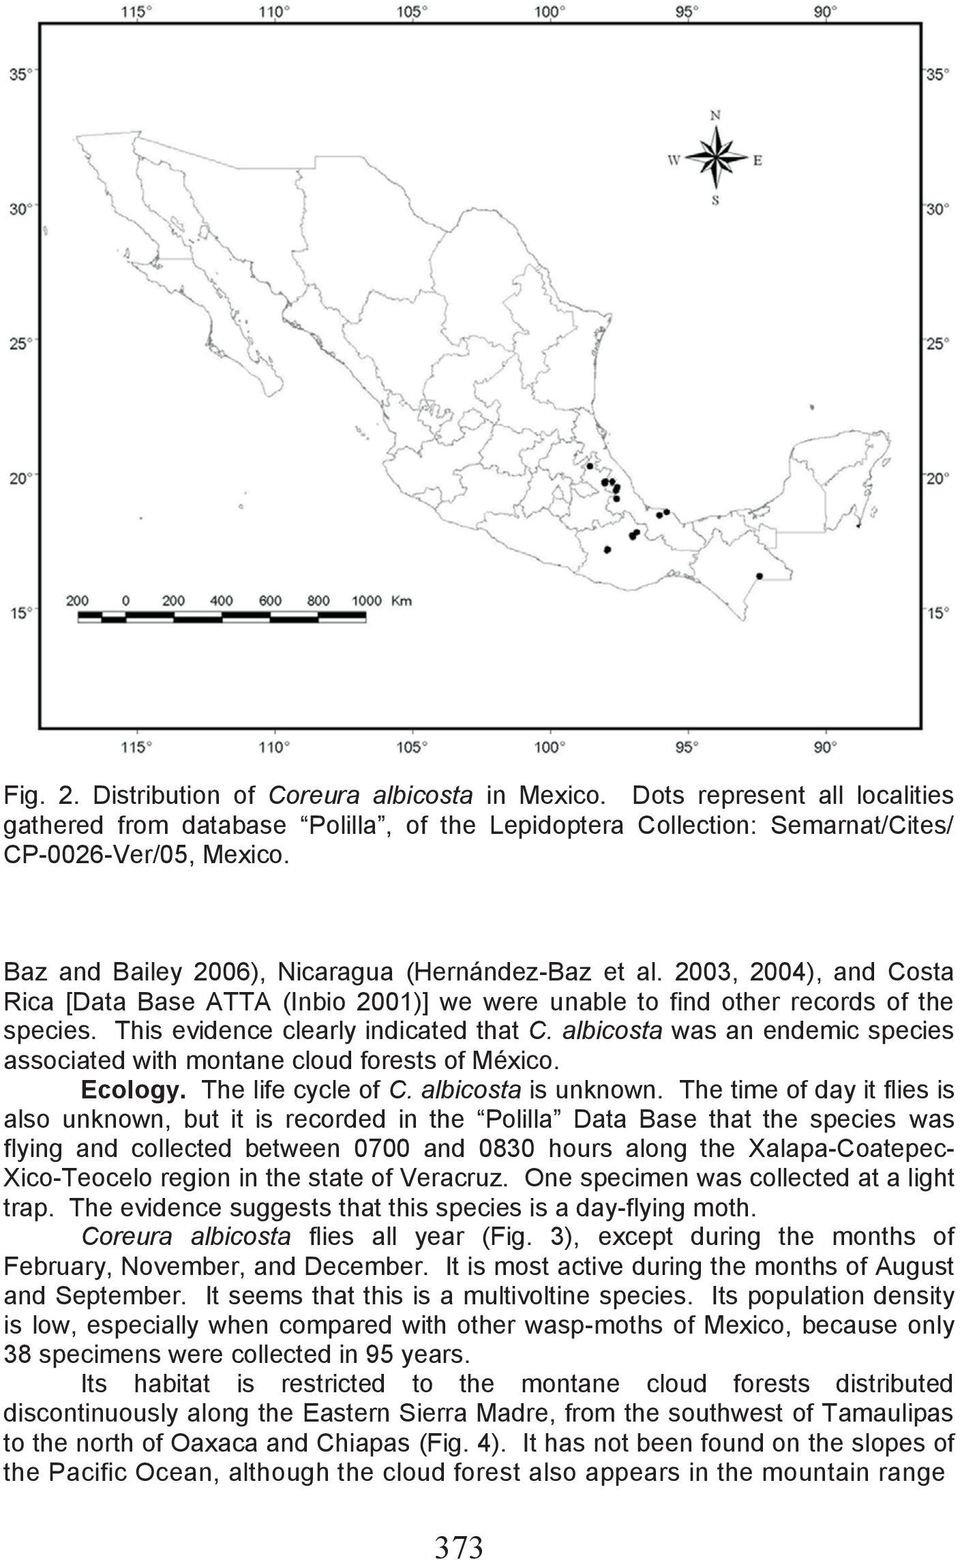 This evidence clearly indicated that C. albicosta was an endemic species associated with montane cloud forests of México. Ecology. The life cycle of C. albicosta is unknown.